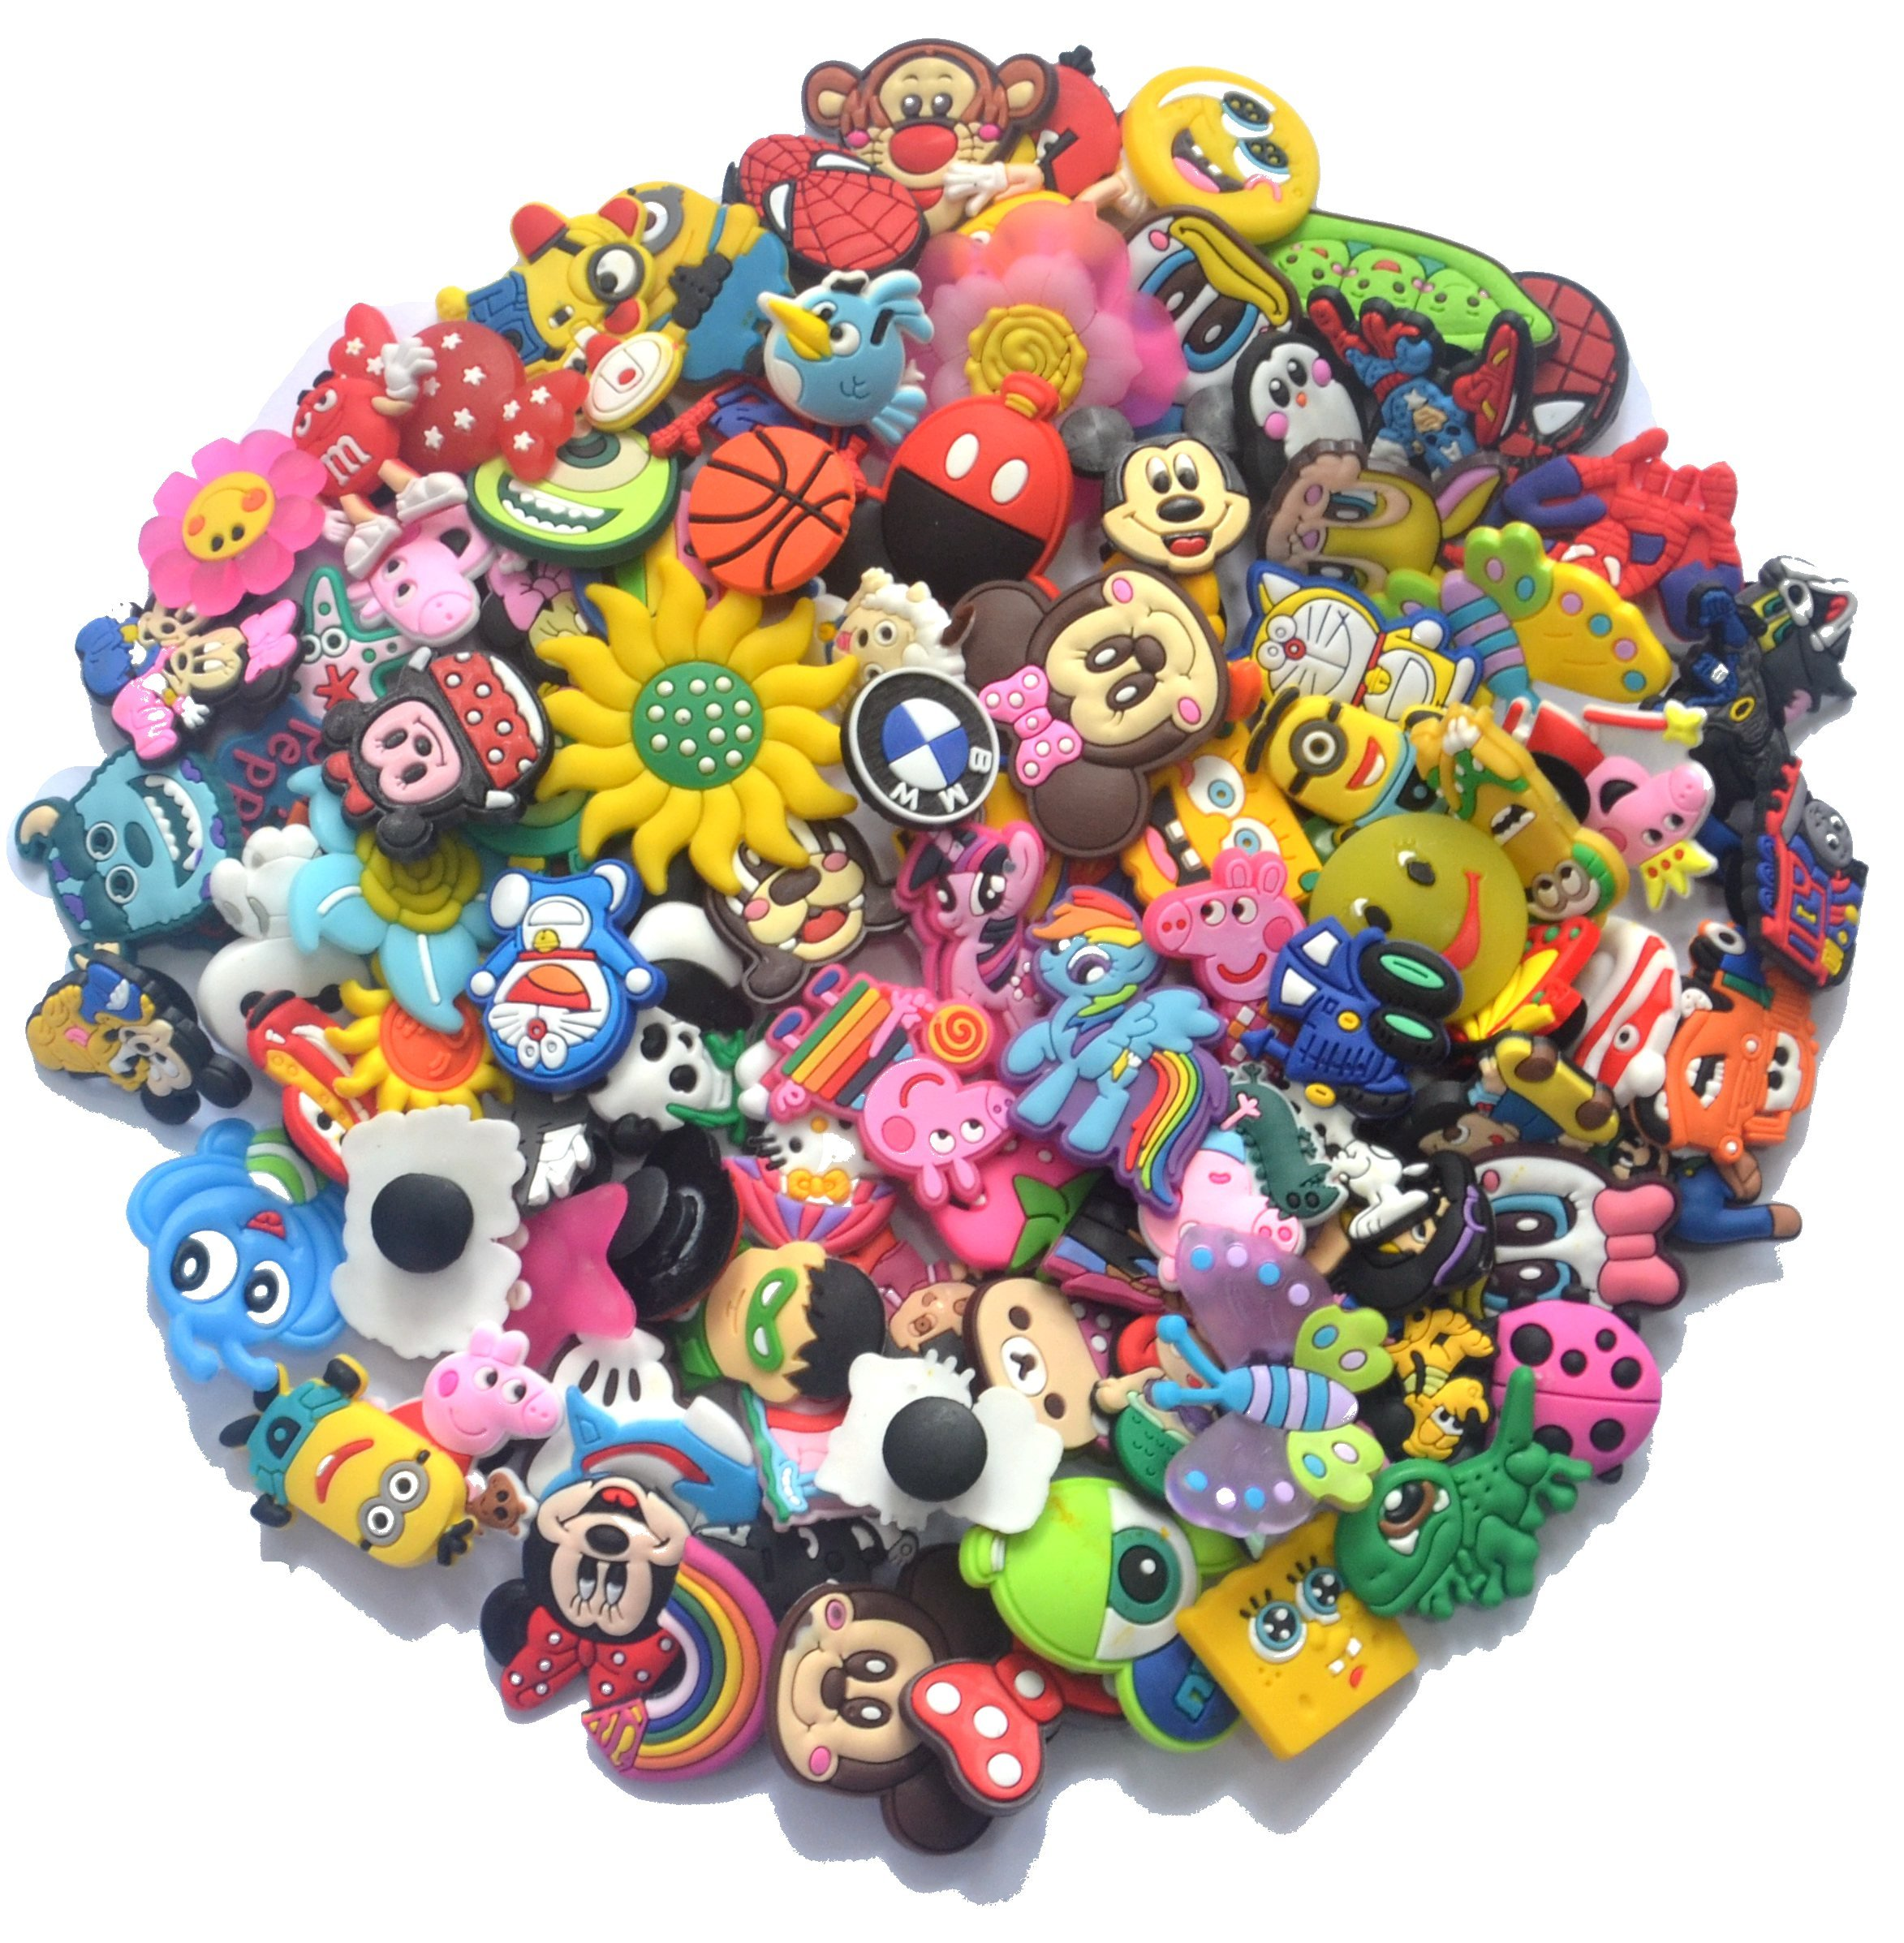 YAOYAO™ Different 101 Pcs PVC Shoe Charms for Croc & Jibbitz Bands Bracelet Wristband For The Beach Camping